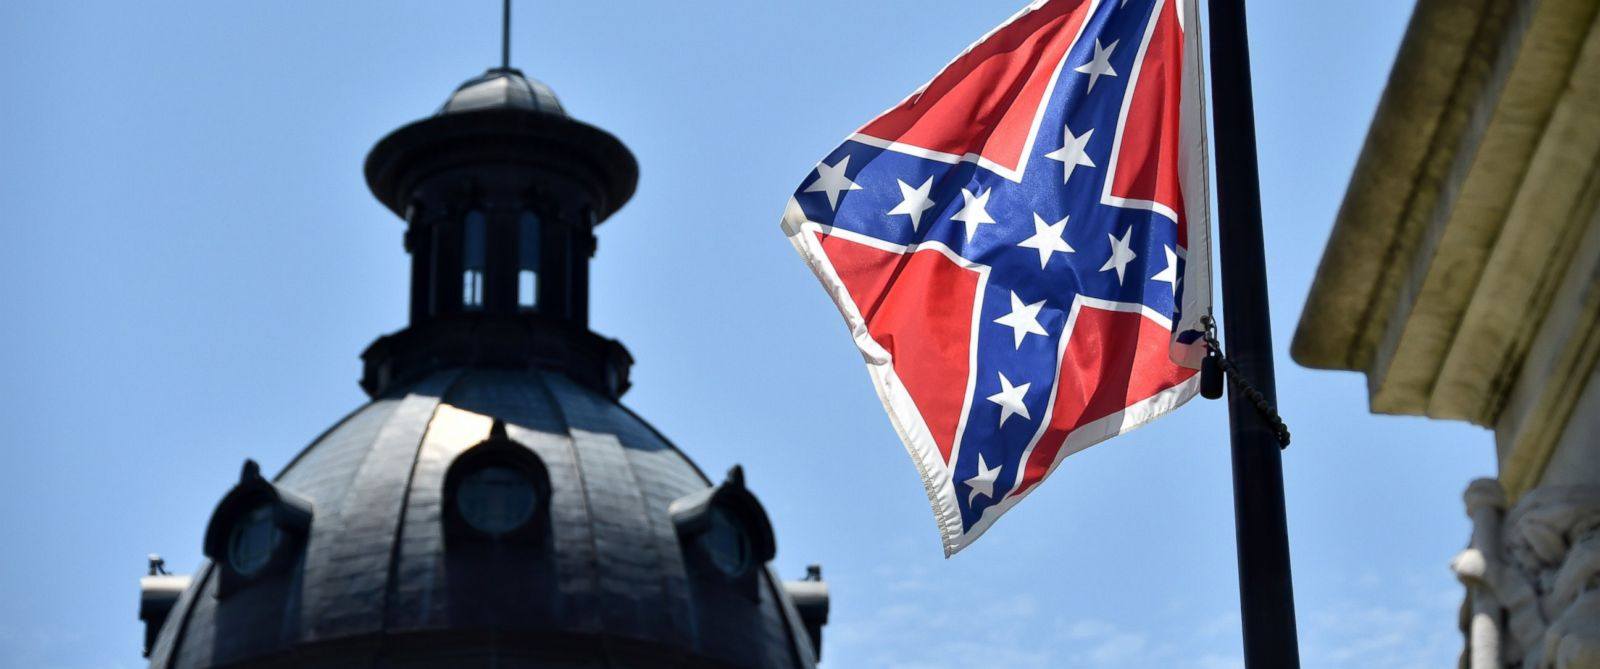 PHOTO: The South Carolina and American flags flying at half-staff behind the Confederate flag erected in front of the State Congress building in Columbia, South Carolina on June 19, 2015.